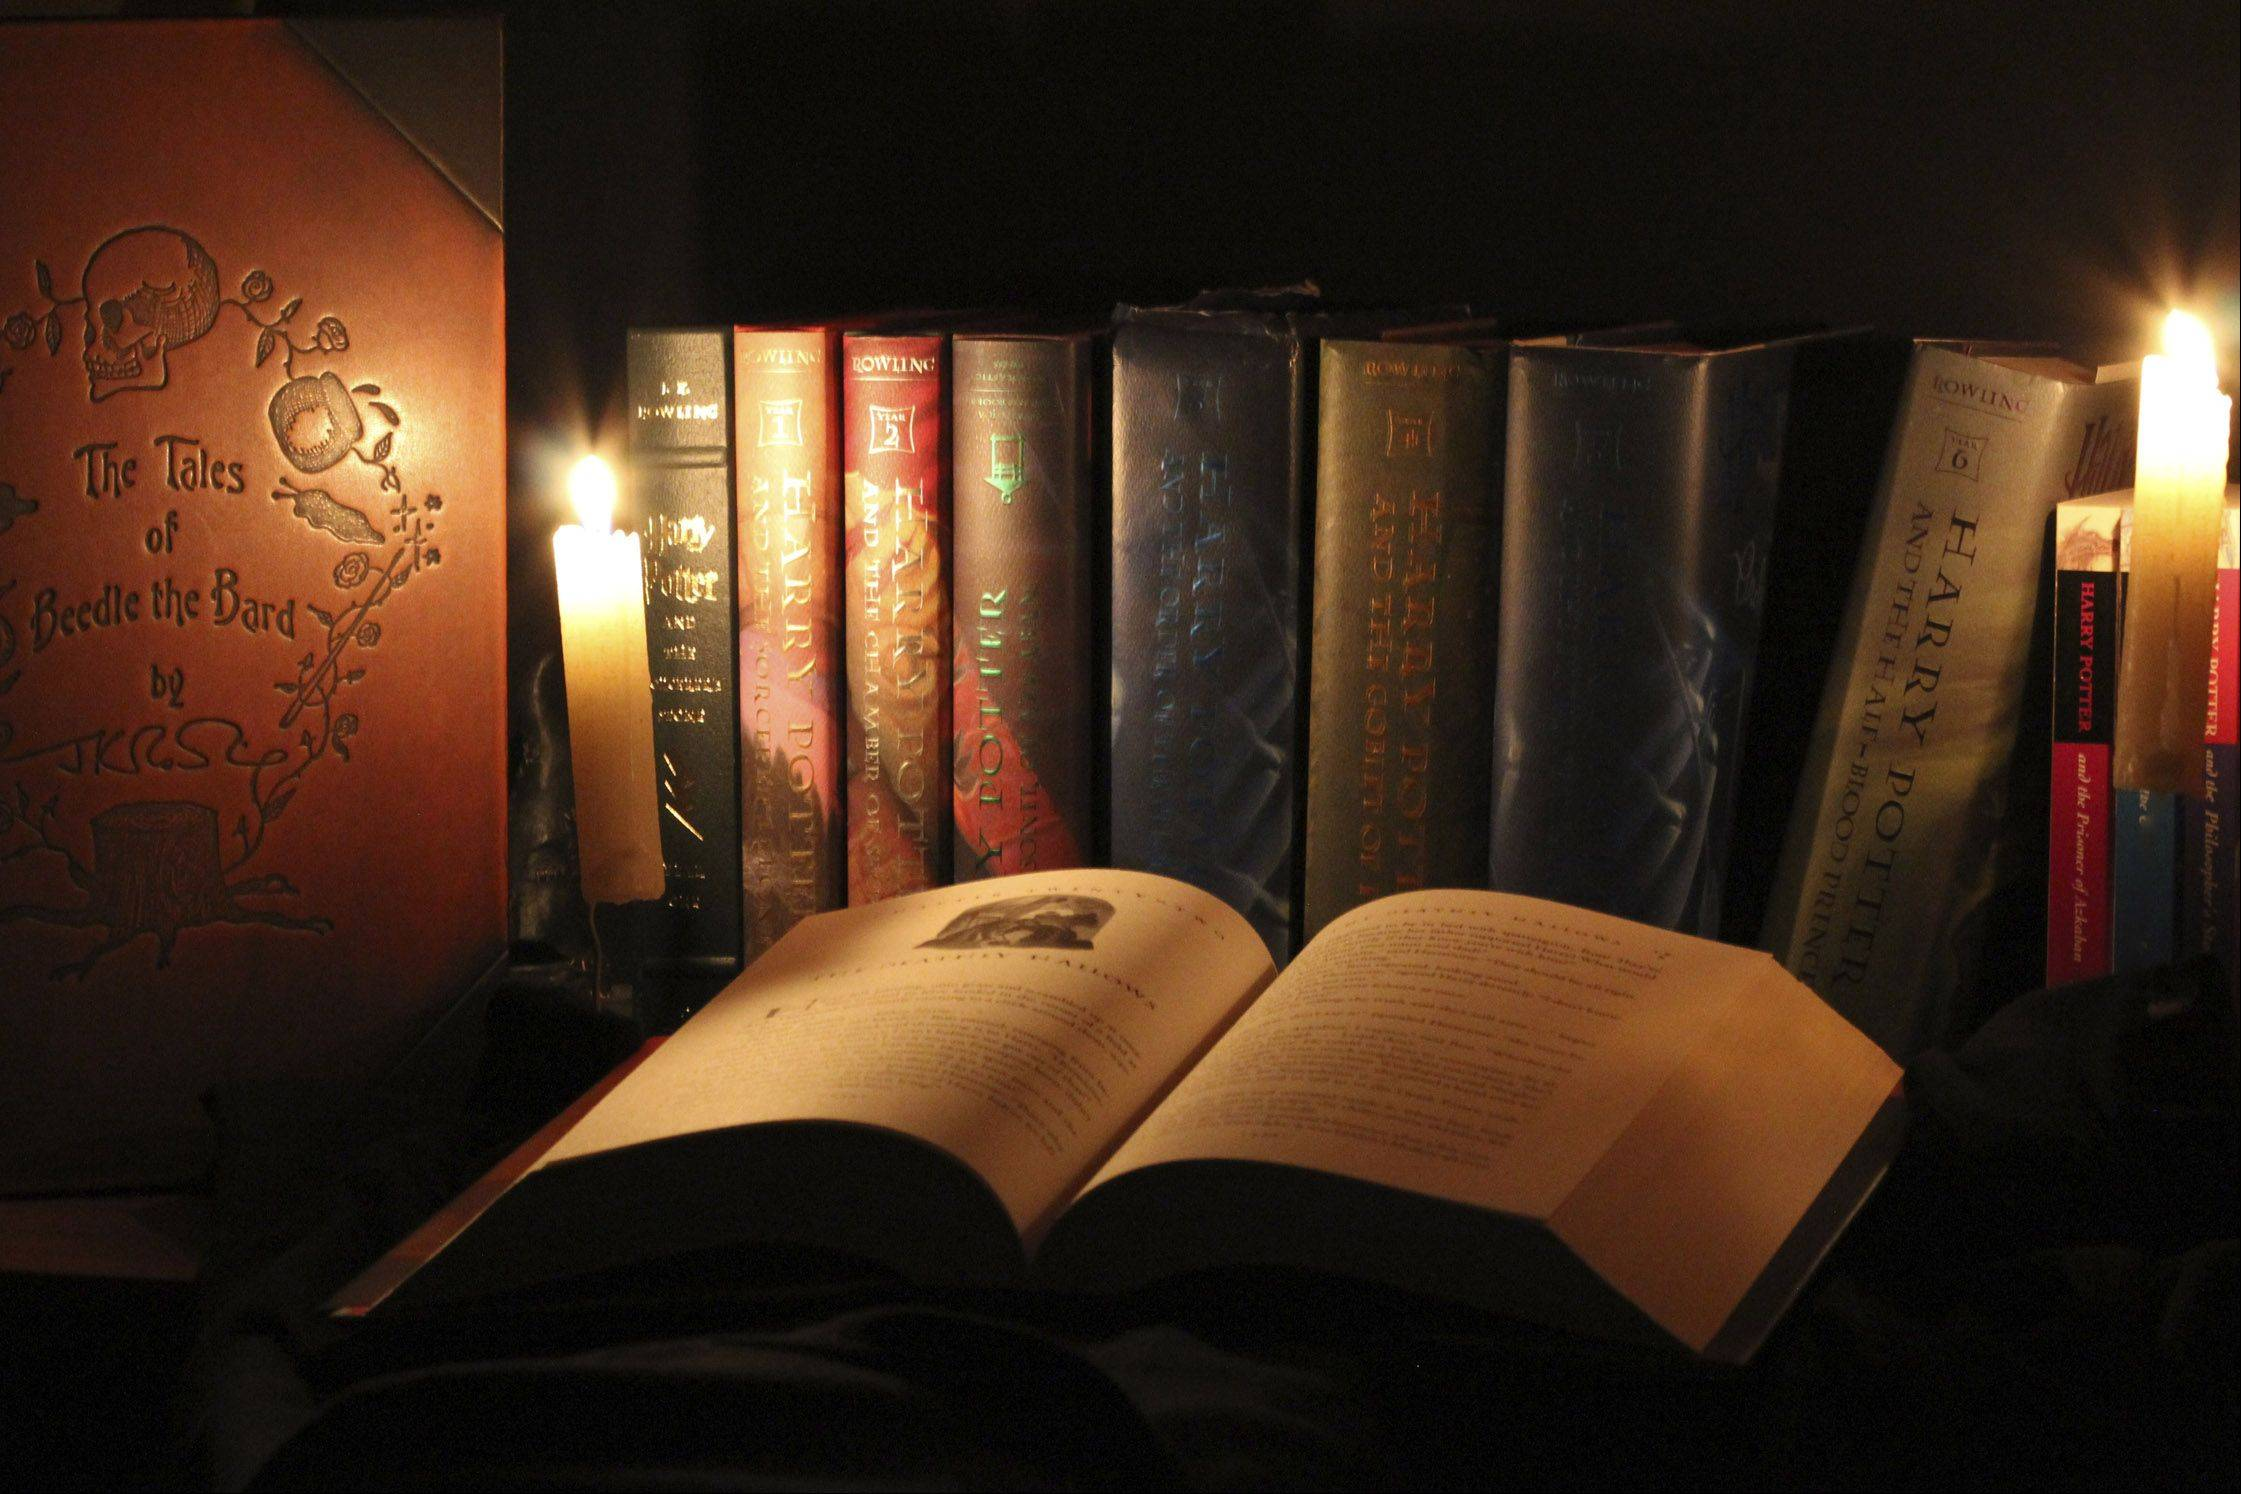 A group Harry Potter books are illuminated with candles to give them a magical look.